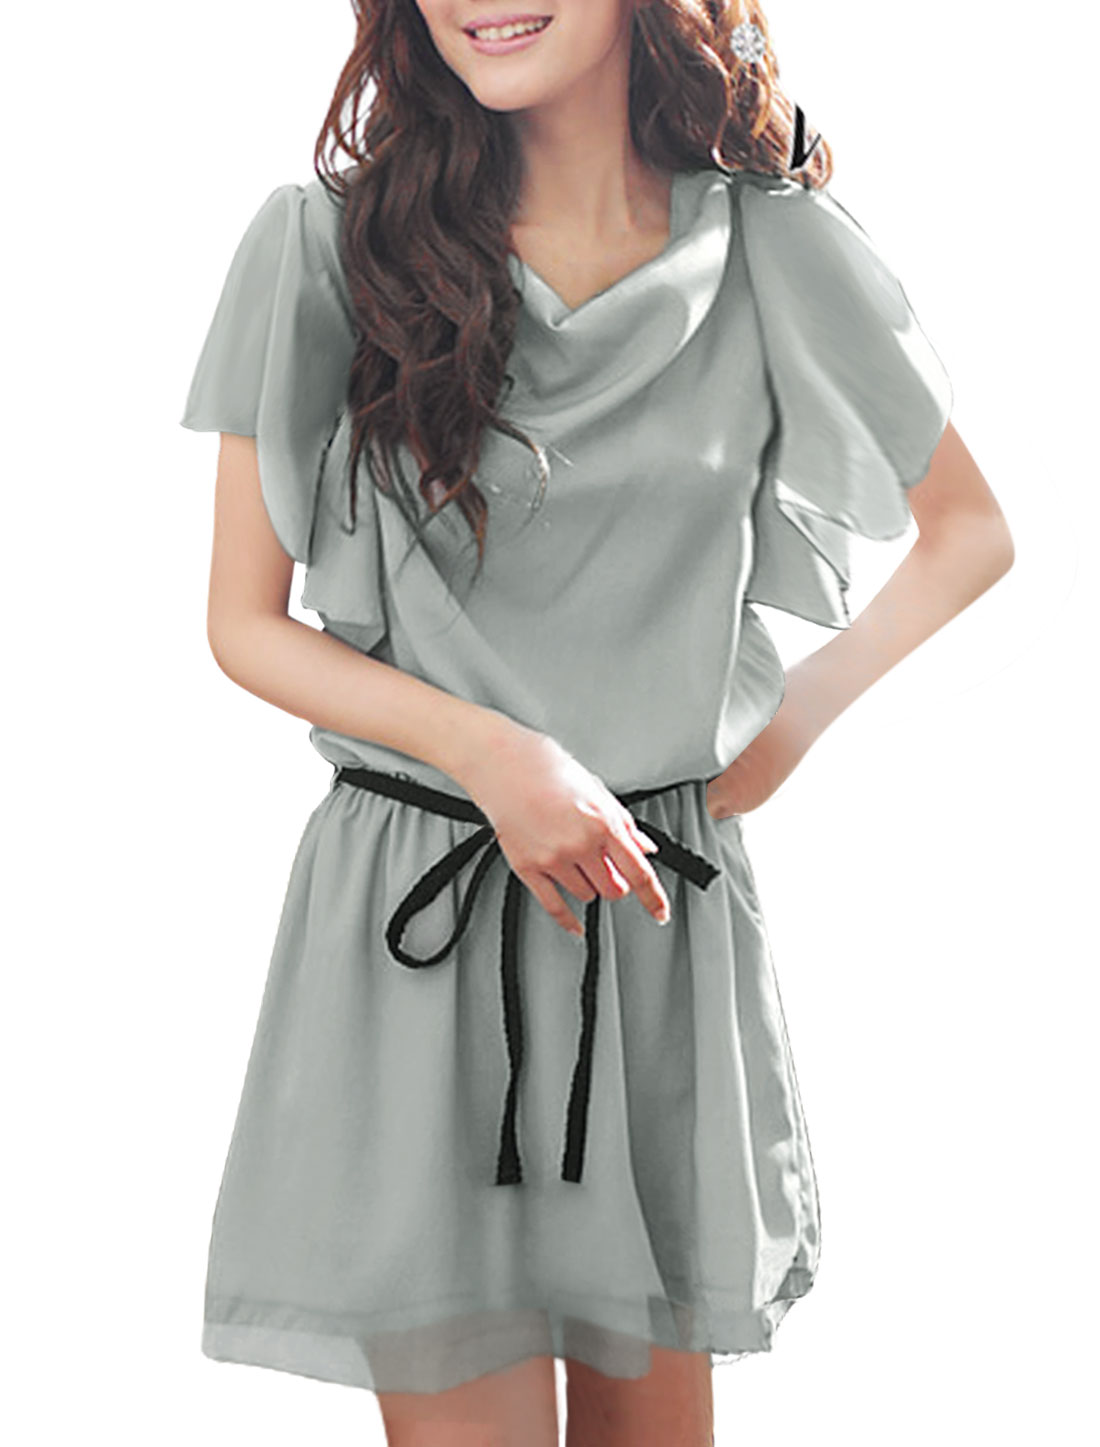 Laides Cowl Neck Short Ruffled Sleeve Gray Above Knee Dress XS